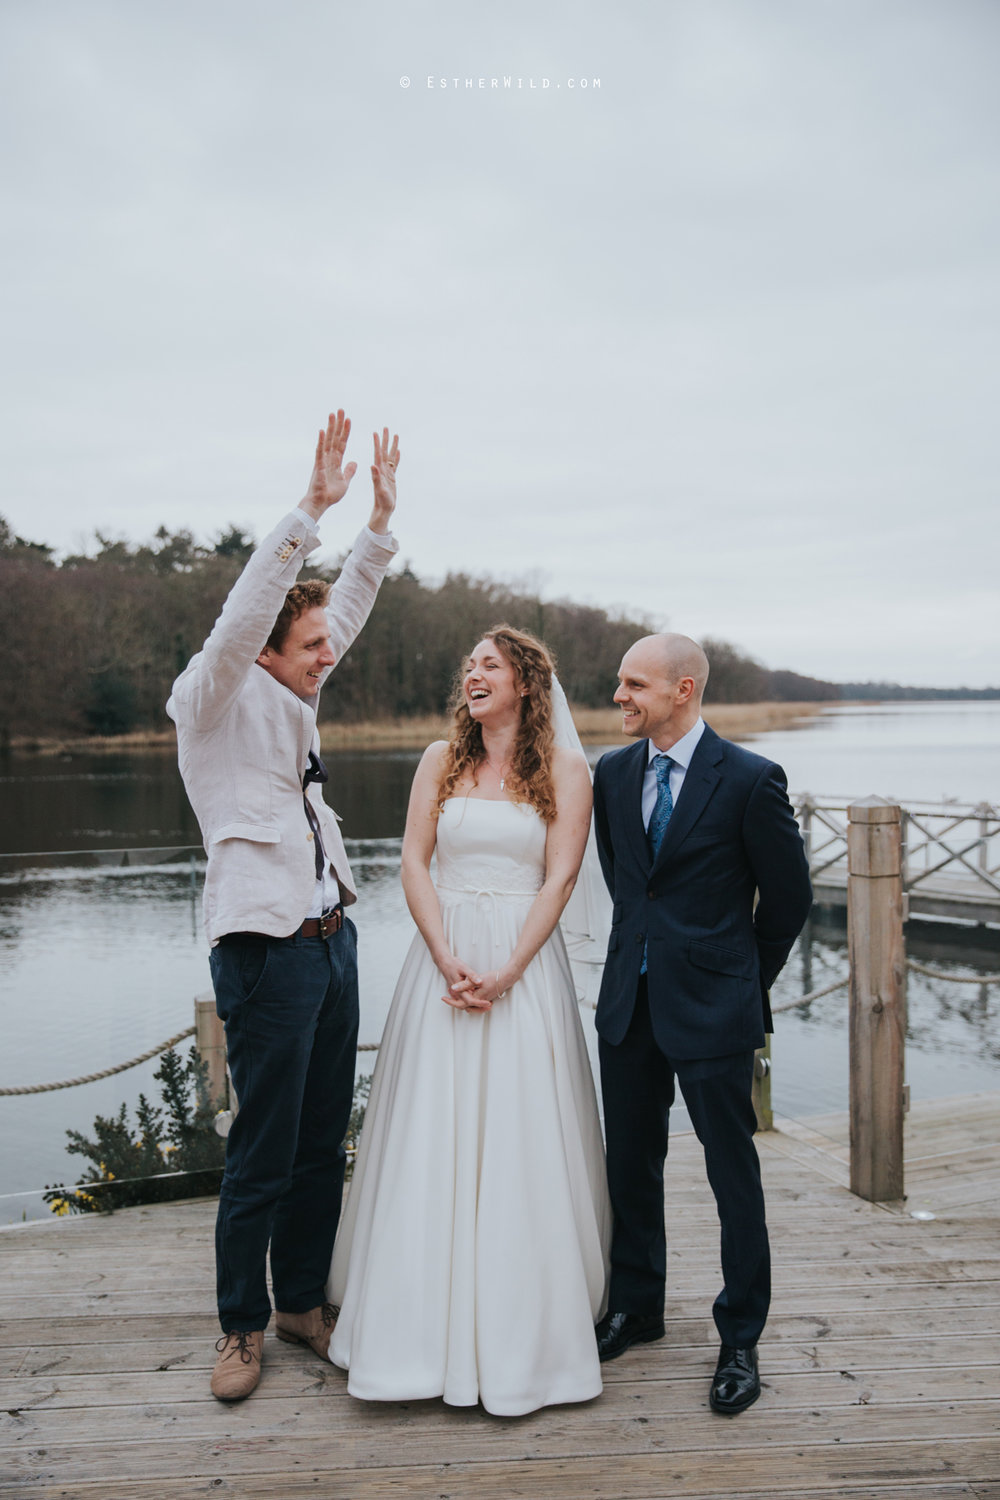 The_BoatHouse_Wedding_Venue_Ormesby_Norfolk_Broads_Boat_Wedding_Photography_Esther_Wild_Photographer_IMG_3278.jpg